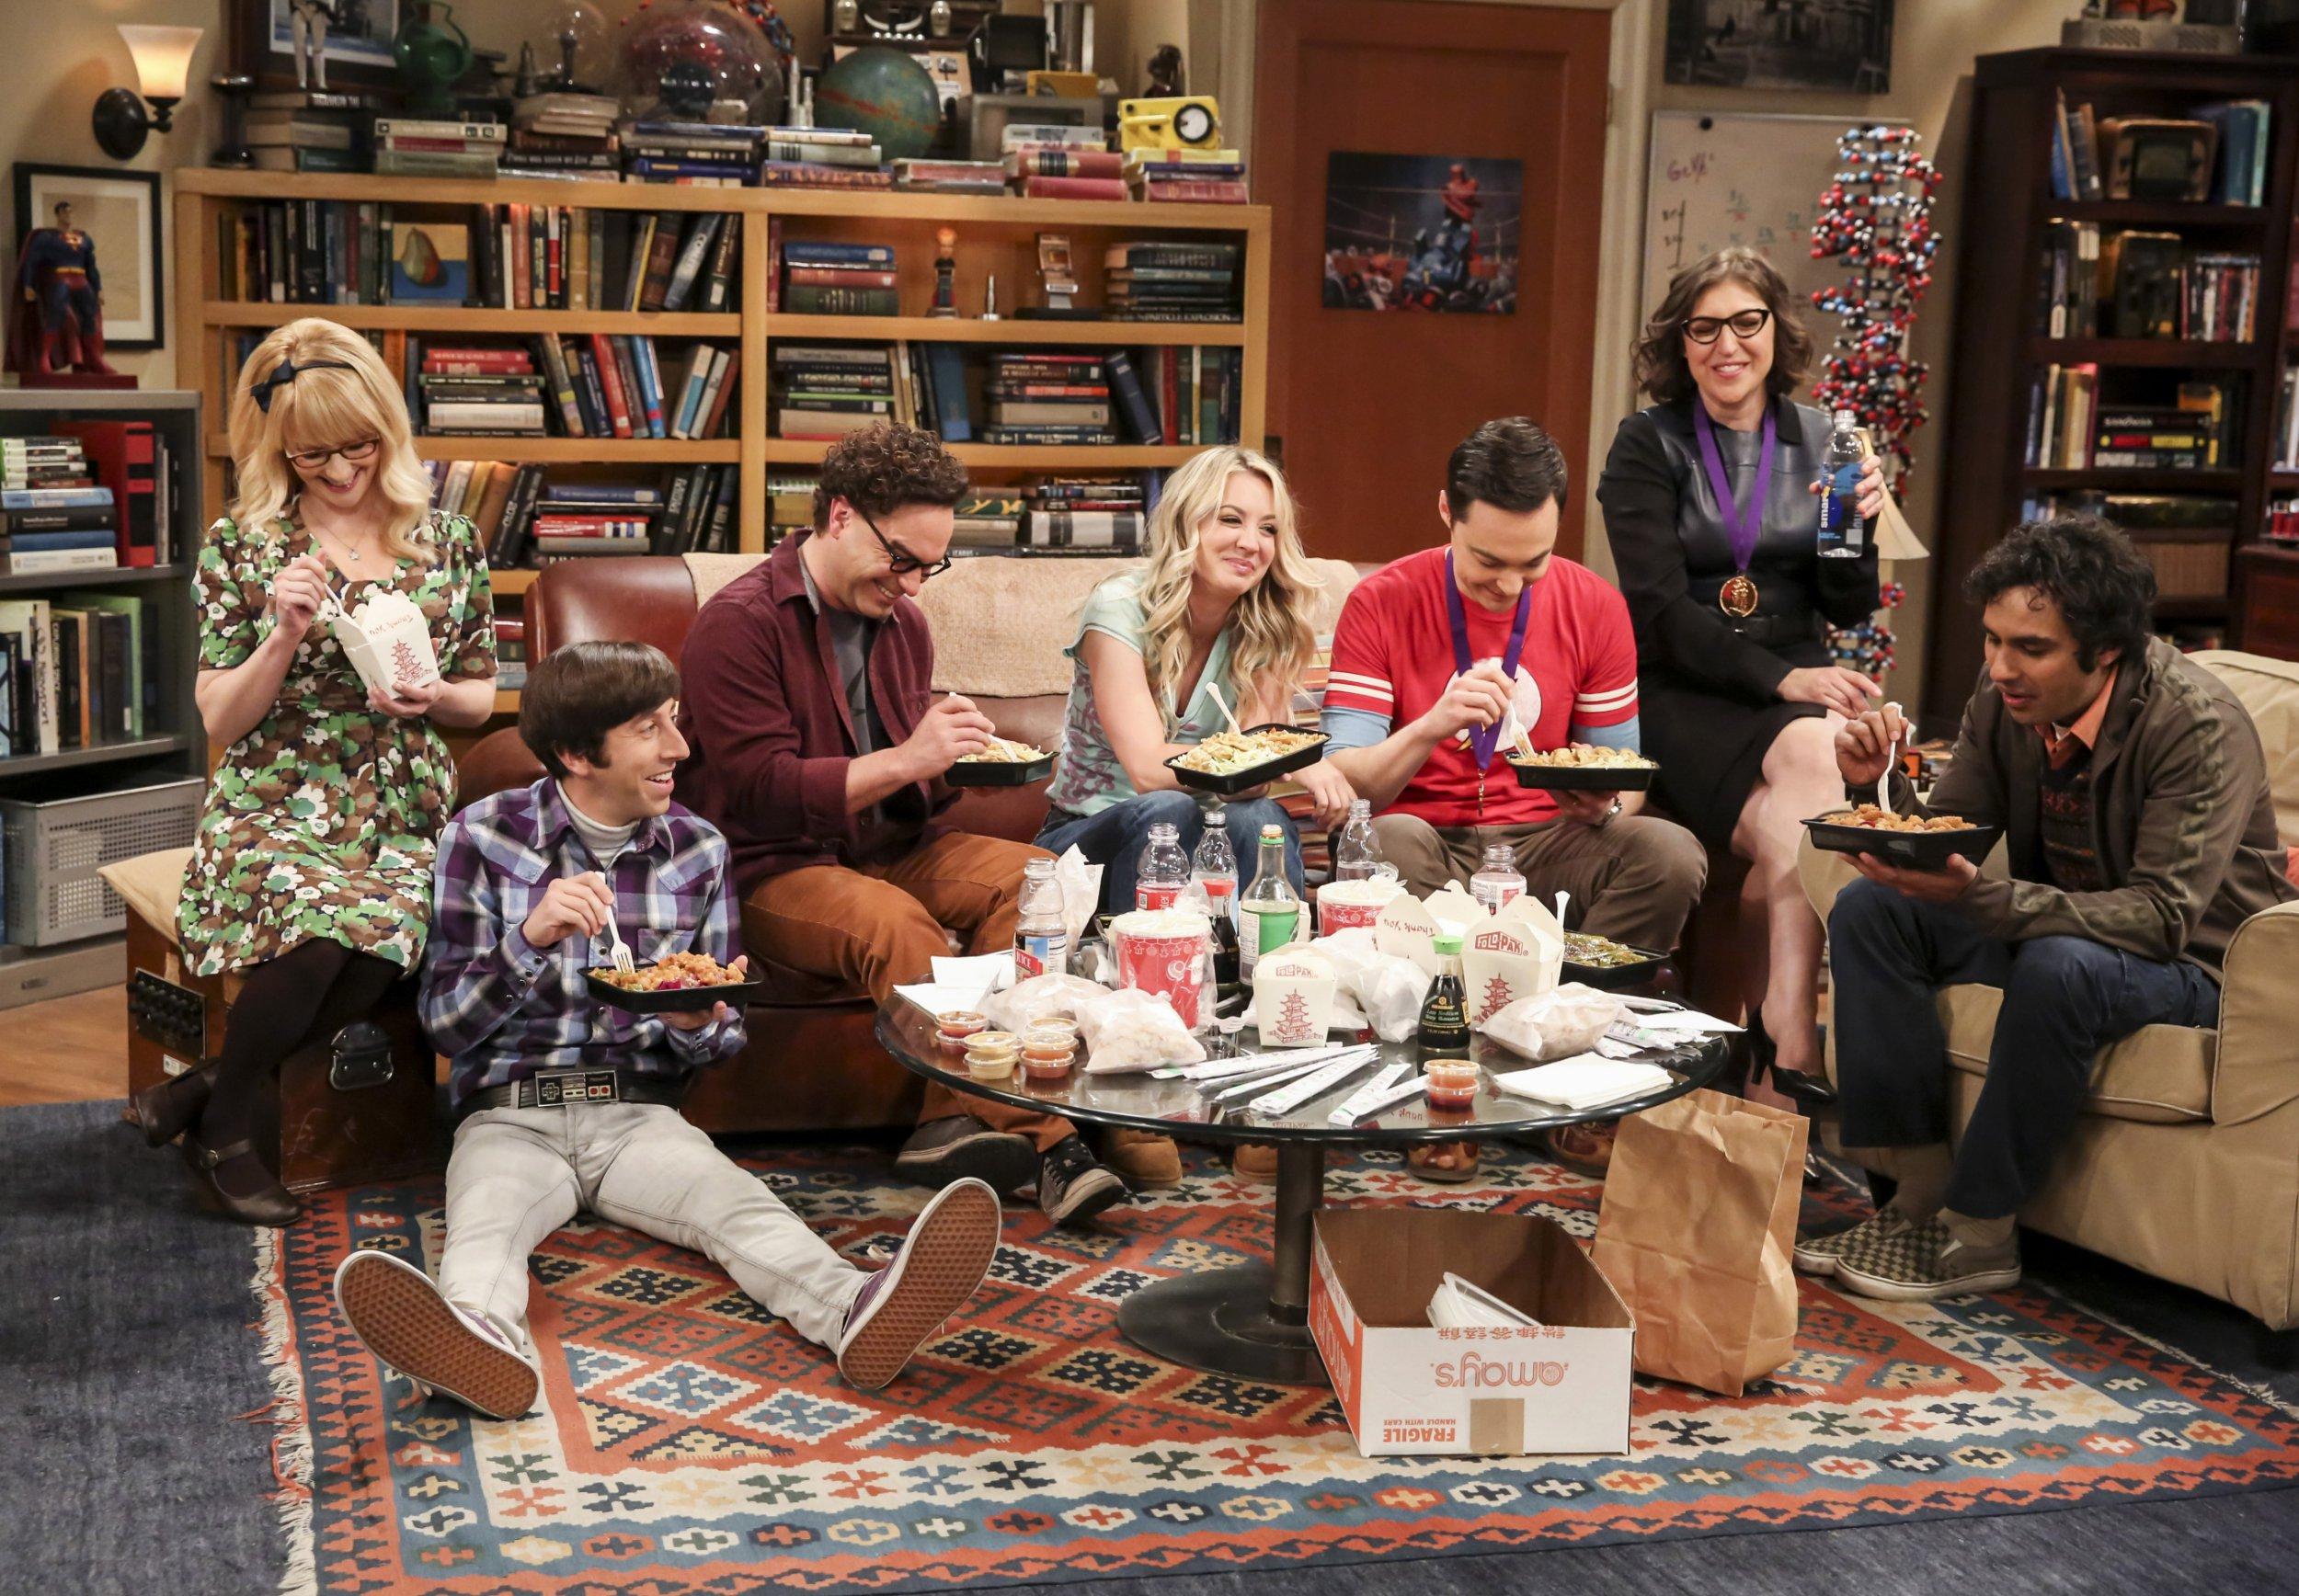 The Big Bang Theory's finale isn't sitcom's most watched episode, despite 18 million fans tuning in